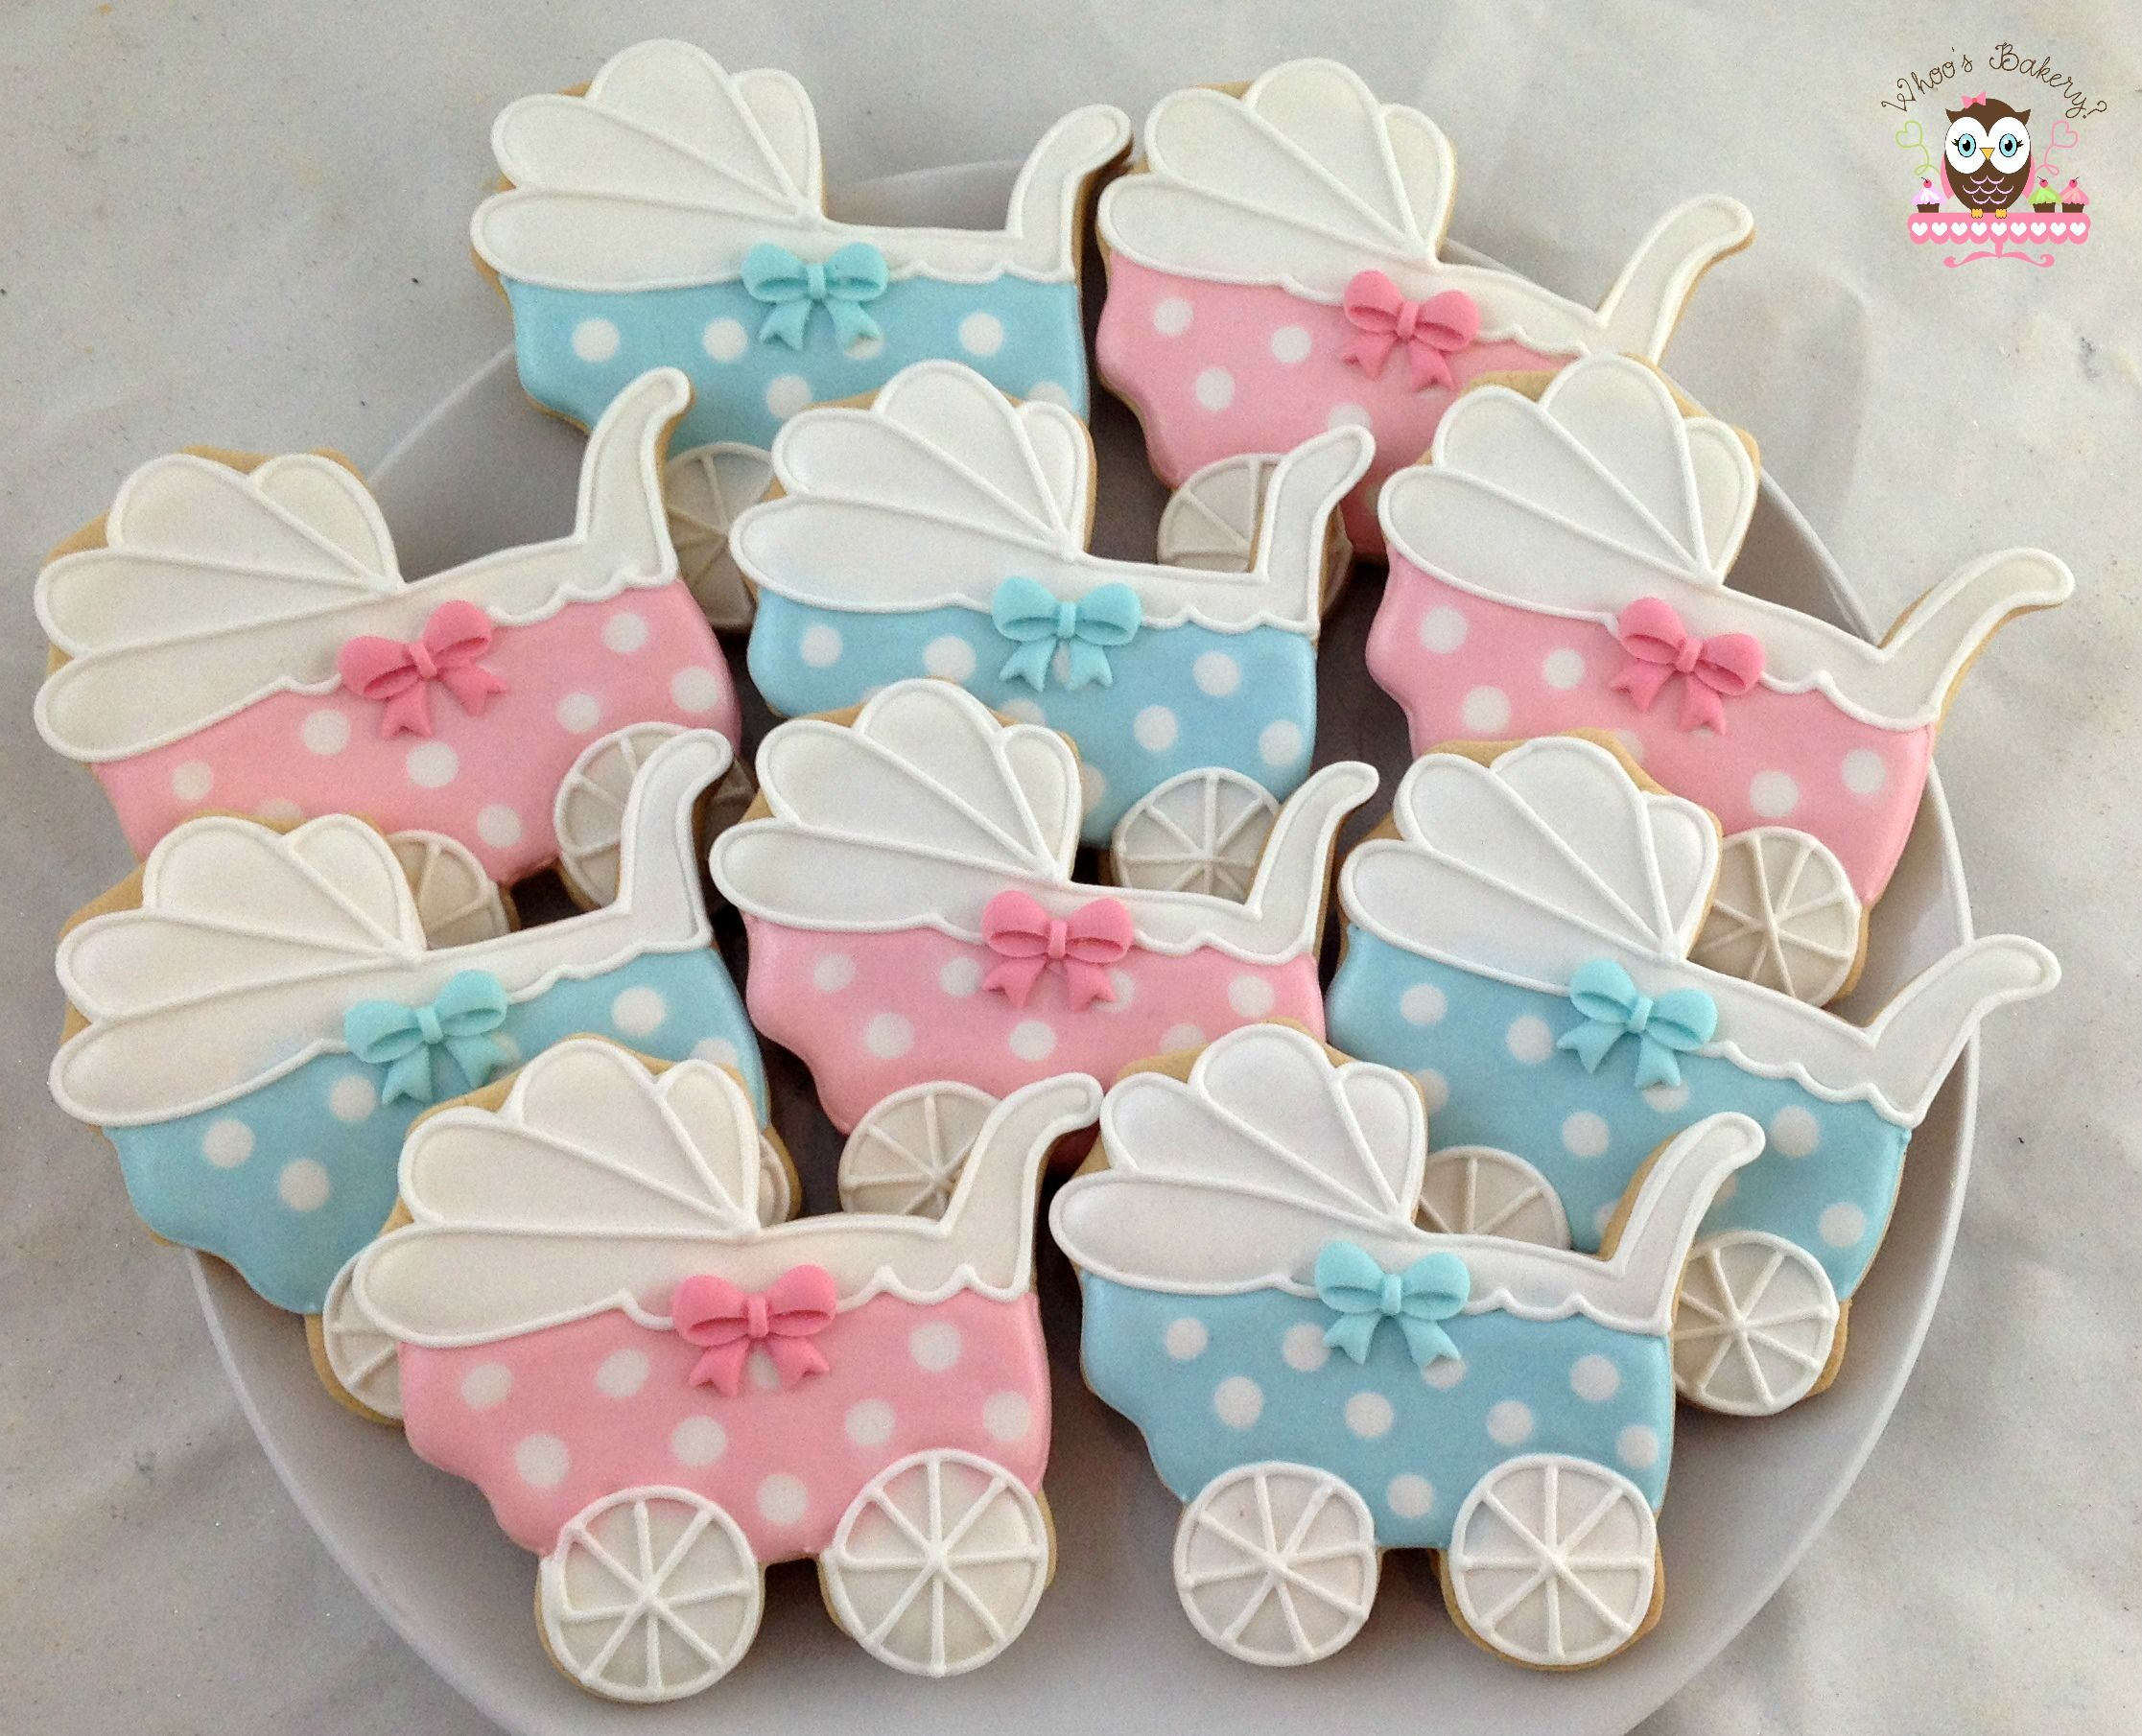 img 7349 2233—1810 cupcakes and cookies Pinterest